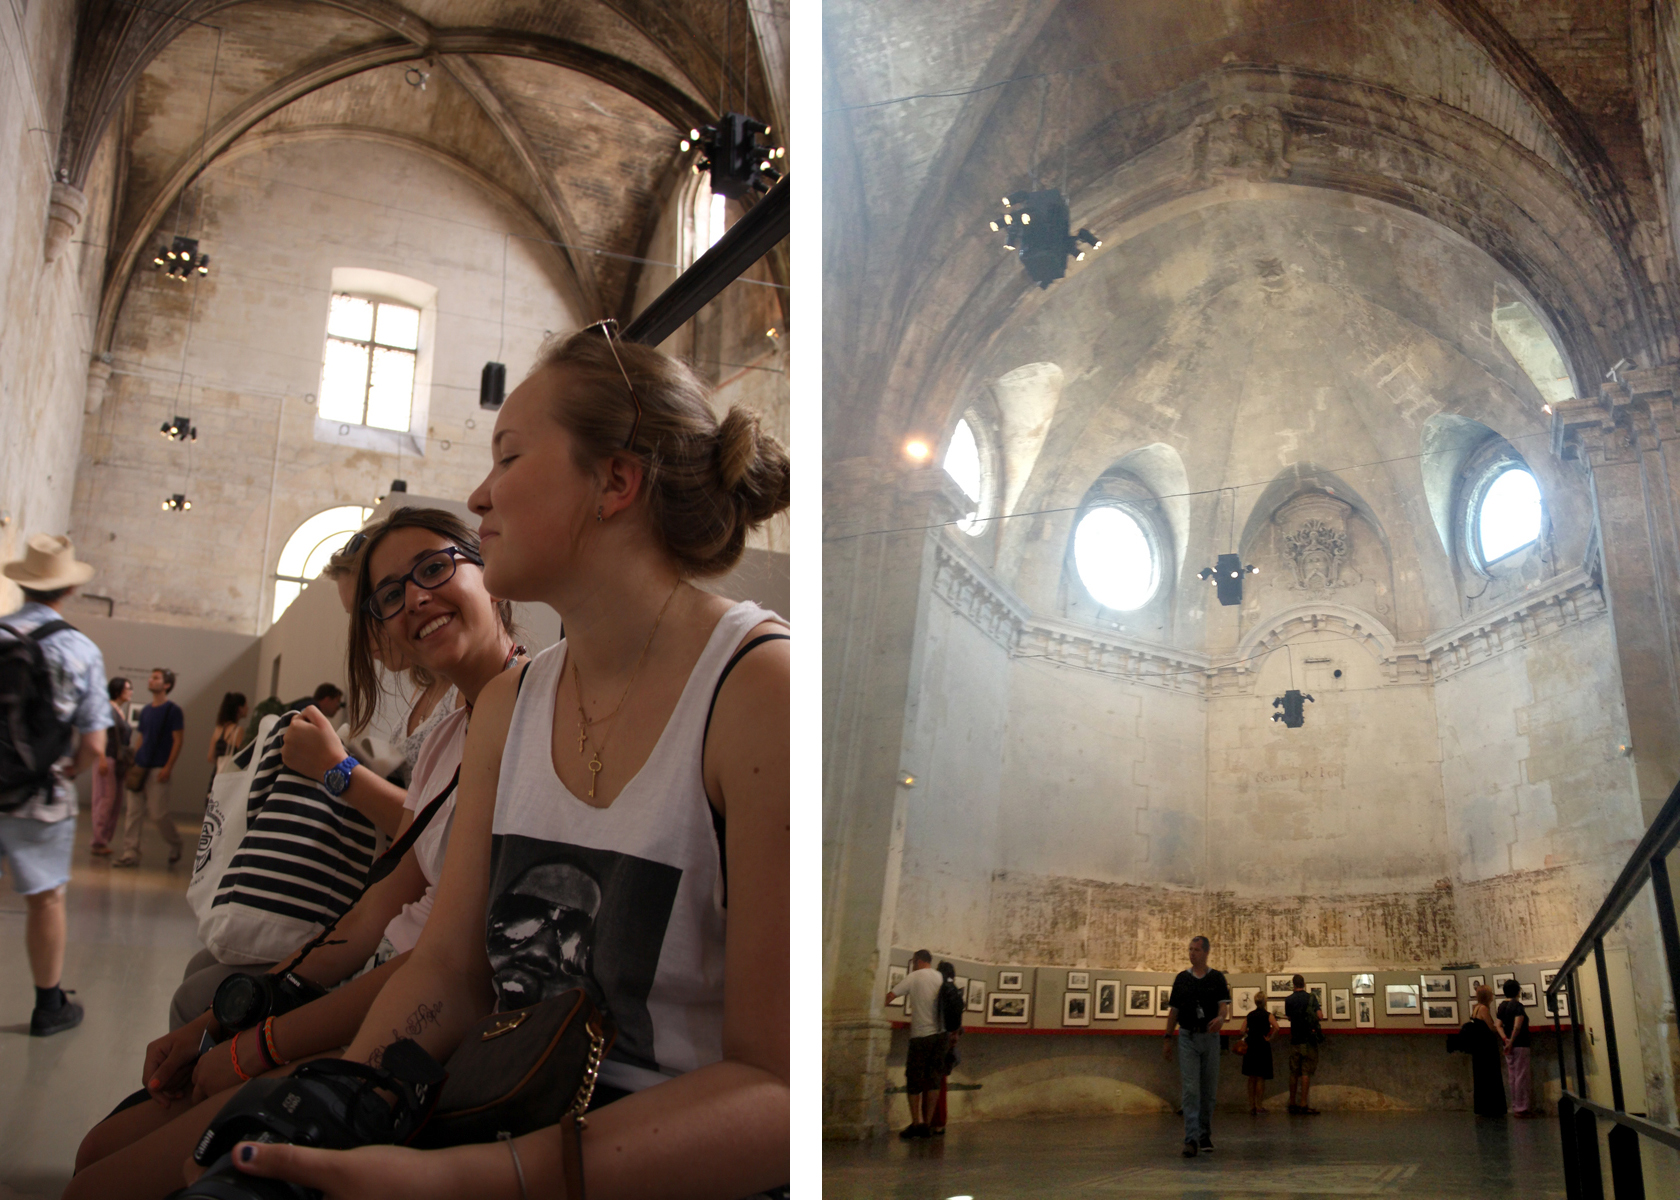 Exhibitions are spread across Arles, with many in incredible buildings such as this Medieval Cathedral